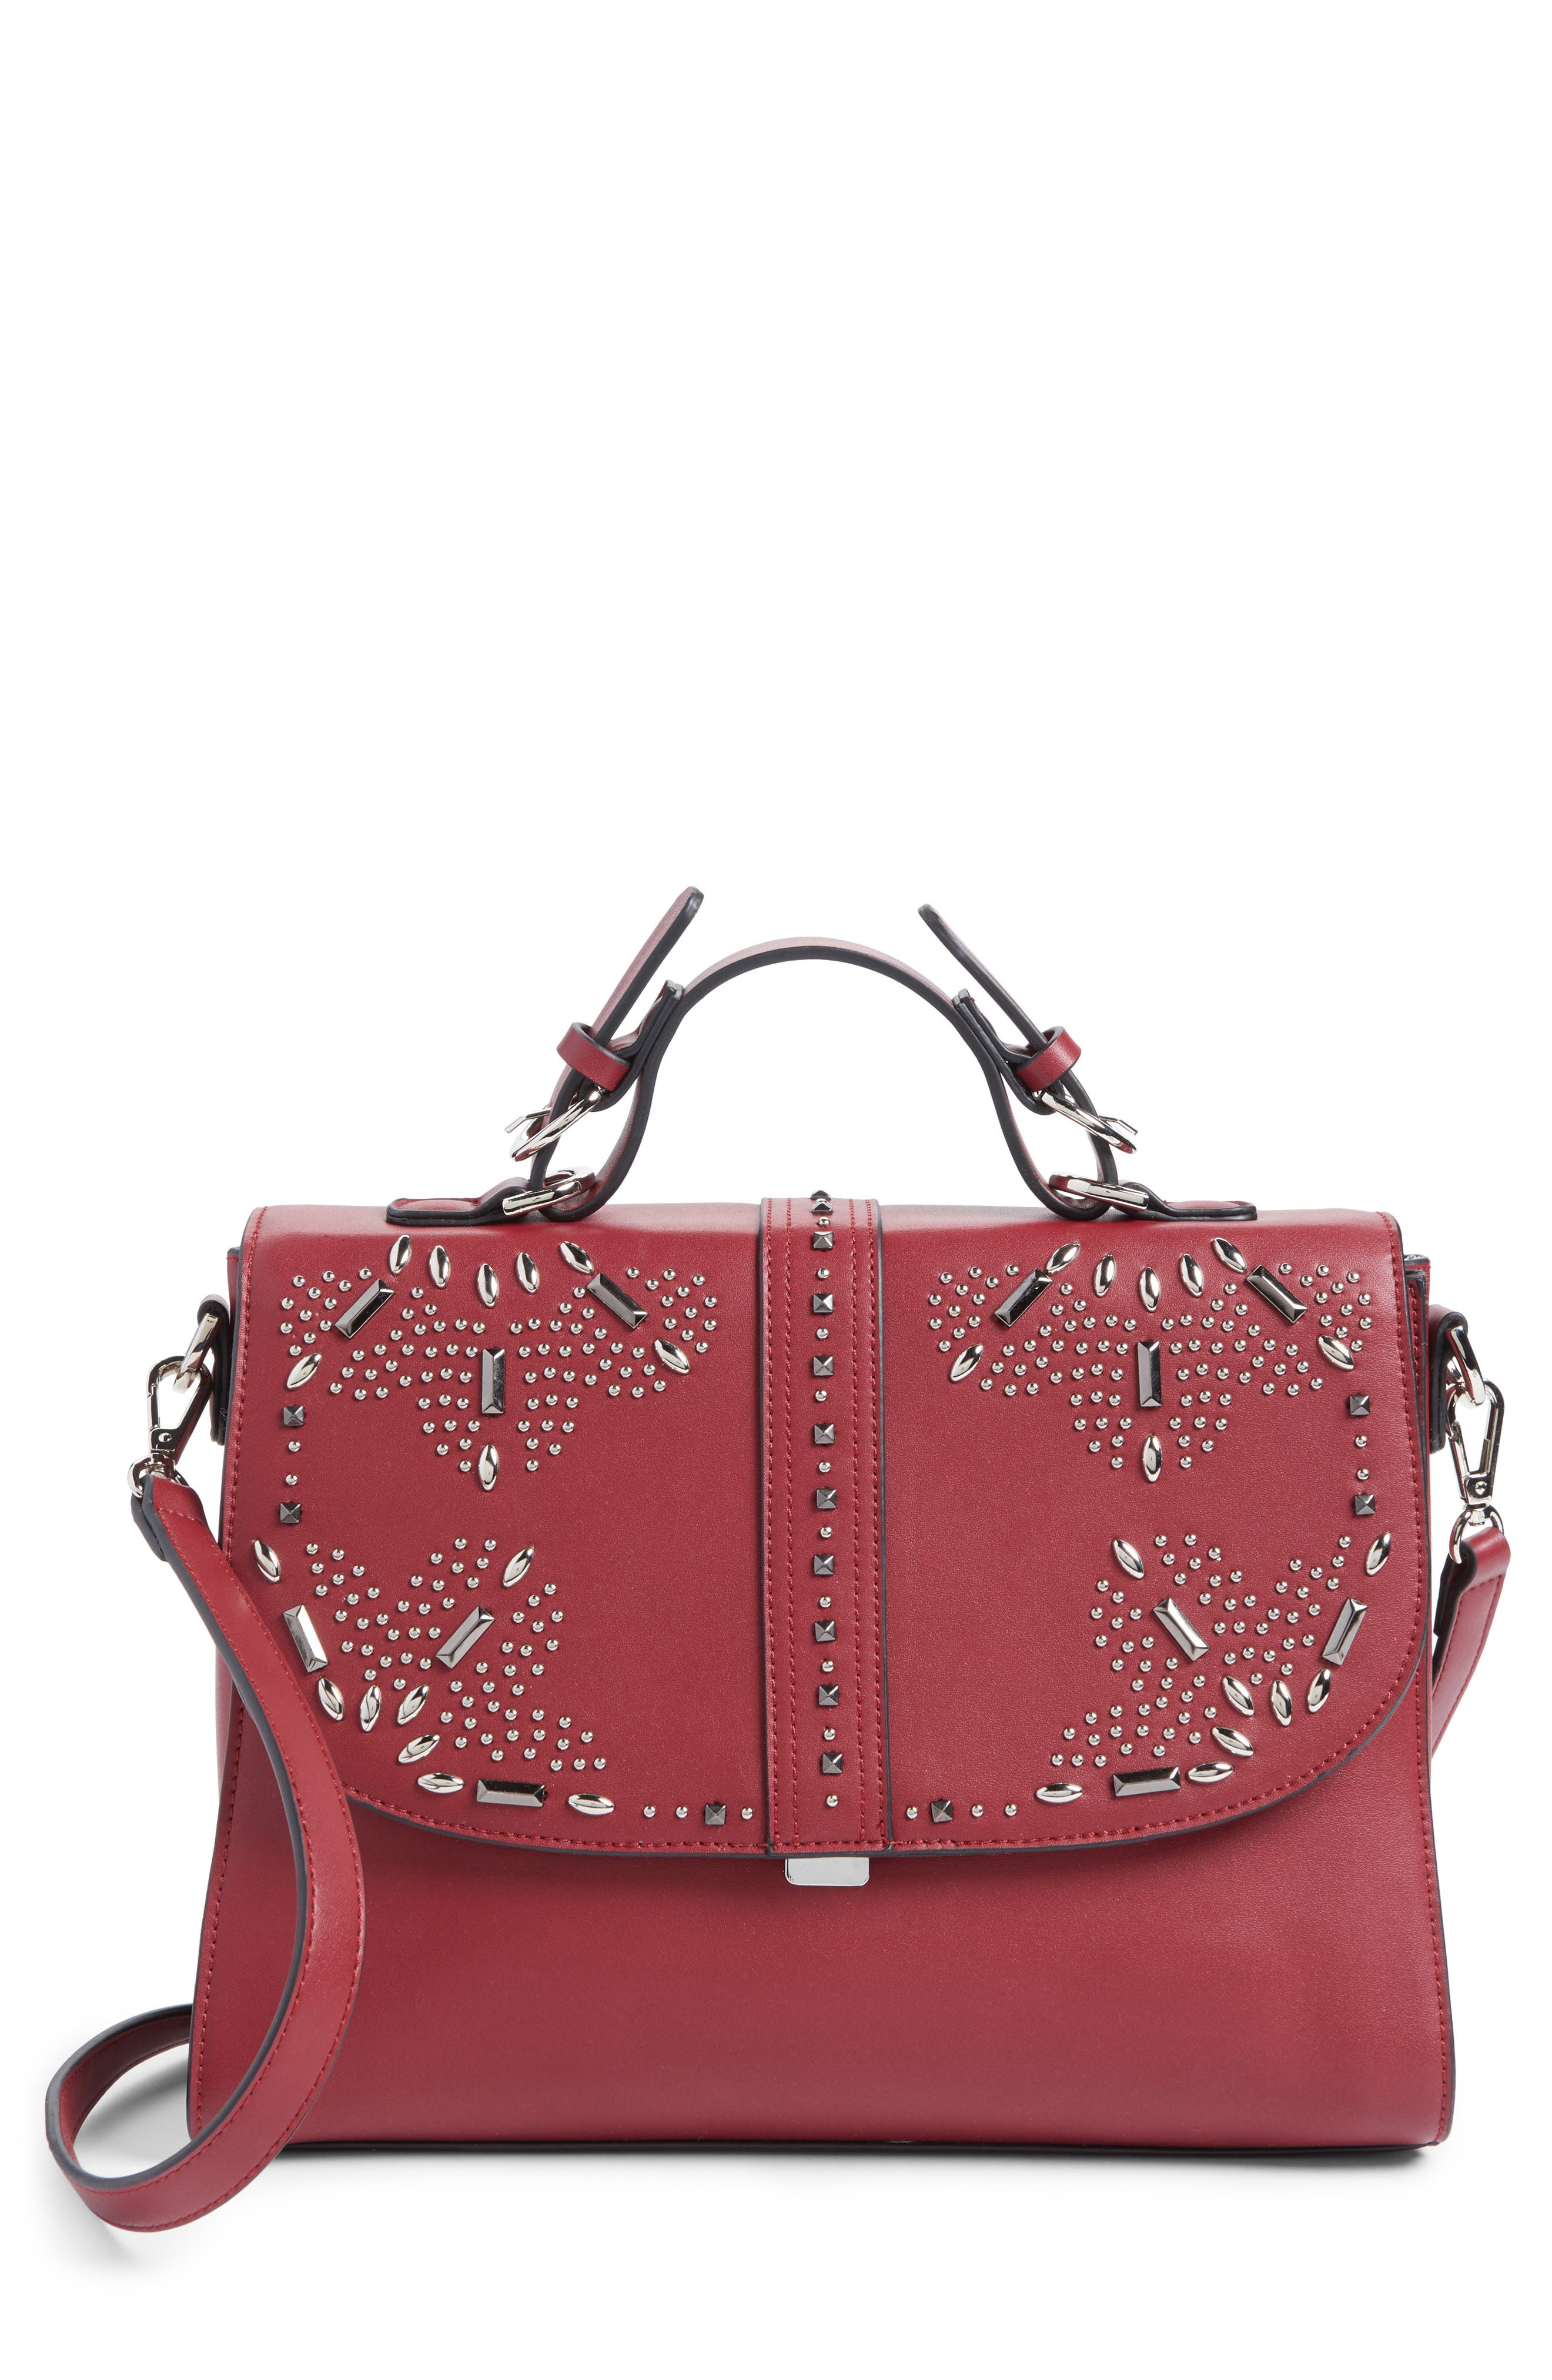 Blair Embellished Faux Leather Top Handle Satchel,                         Main,                         color, Red Cerise